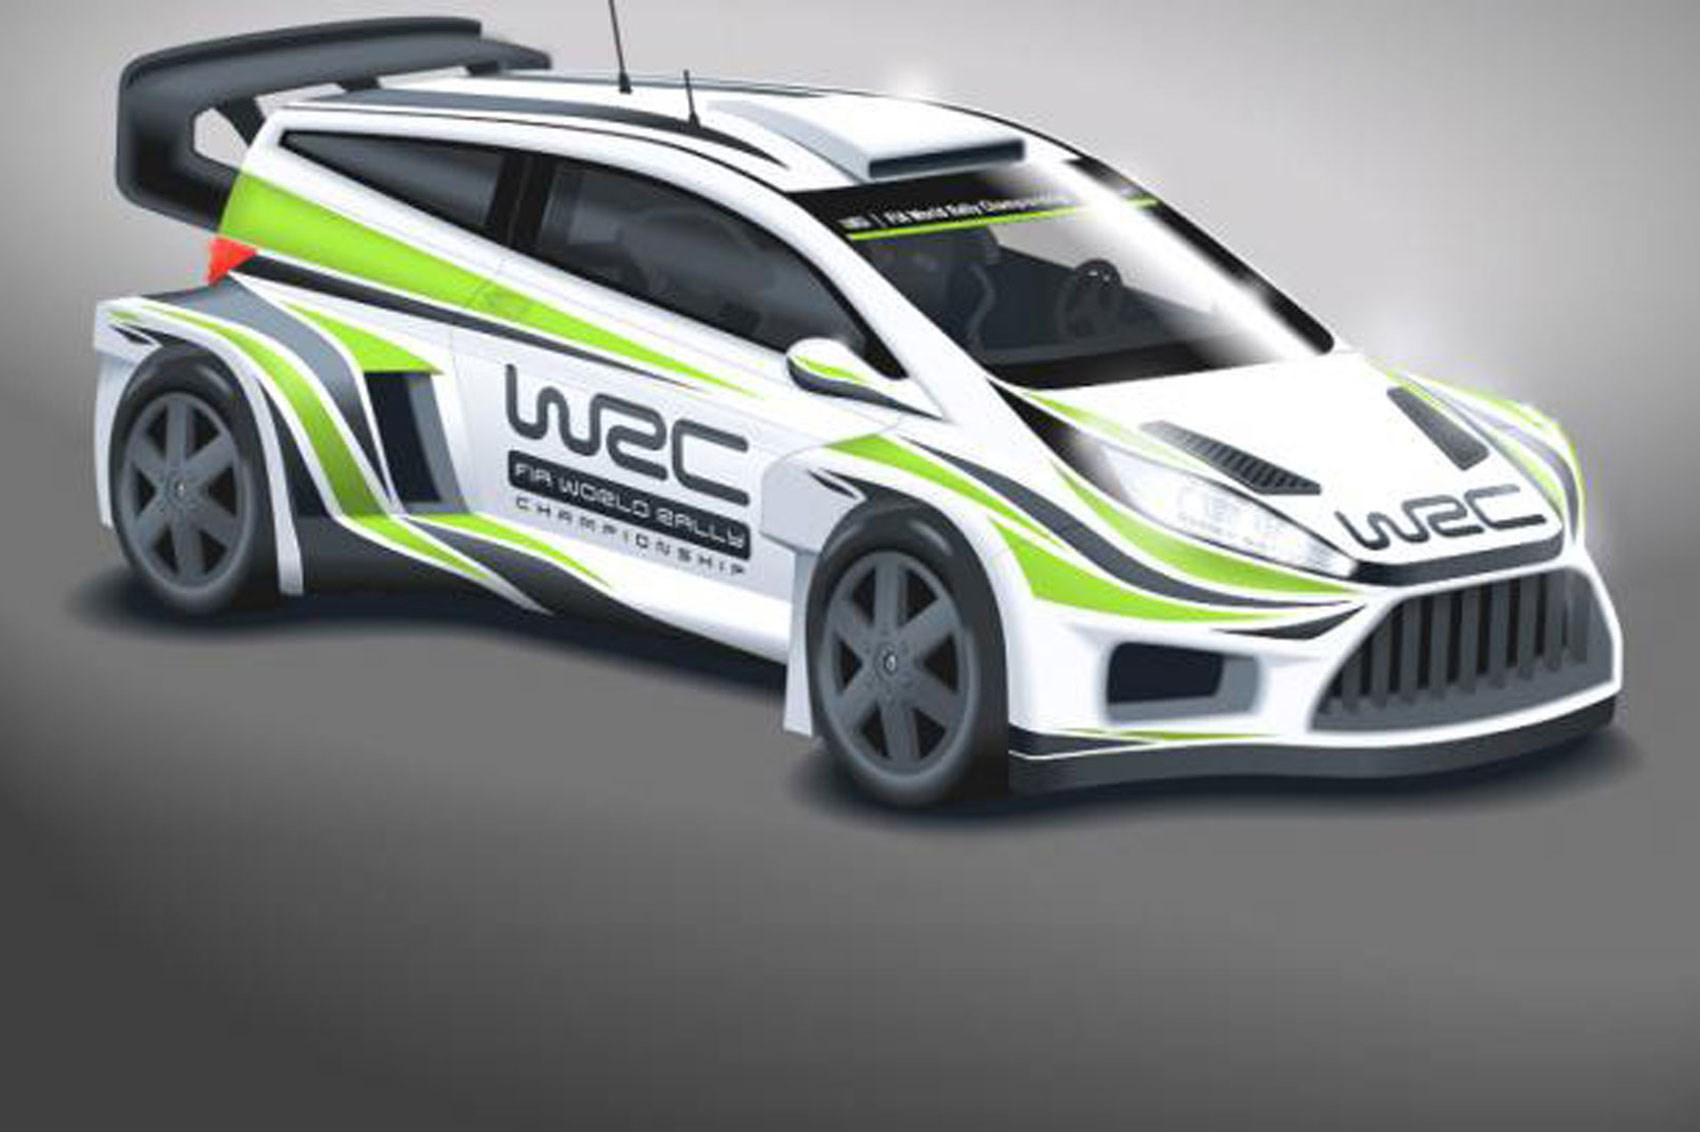 Ultrablogus  Winning Wild New Look For Wrc Cars In  By Car Magazine With Great Wrc Cars Will Get Wider Bodies Bigger Wings And More Power For  With Comely Hummer Hx Interior Also Freightliner Argosy Interior In Addition Jeep Wrangler Jk Interior Mods And Custom Commodore Interior As Well As Srx Interior Additionally Cessna Citation Interior From Carmagazinecouk With Ultrablogus  Great Wild New Look For Wrc Cars In  By Car Magazine With Comely Wrc Cars Will Get Wider Bodies Bigger Wings And More Power For  And Winning Hummer Hx Interior Also Freightliner Argosy Interior In Addition Jeep Wrangler Jk Interior Mods From Carmagazinecouk